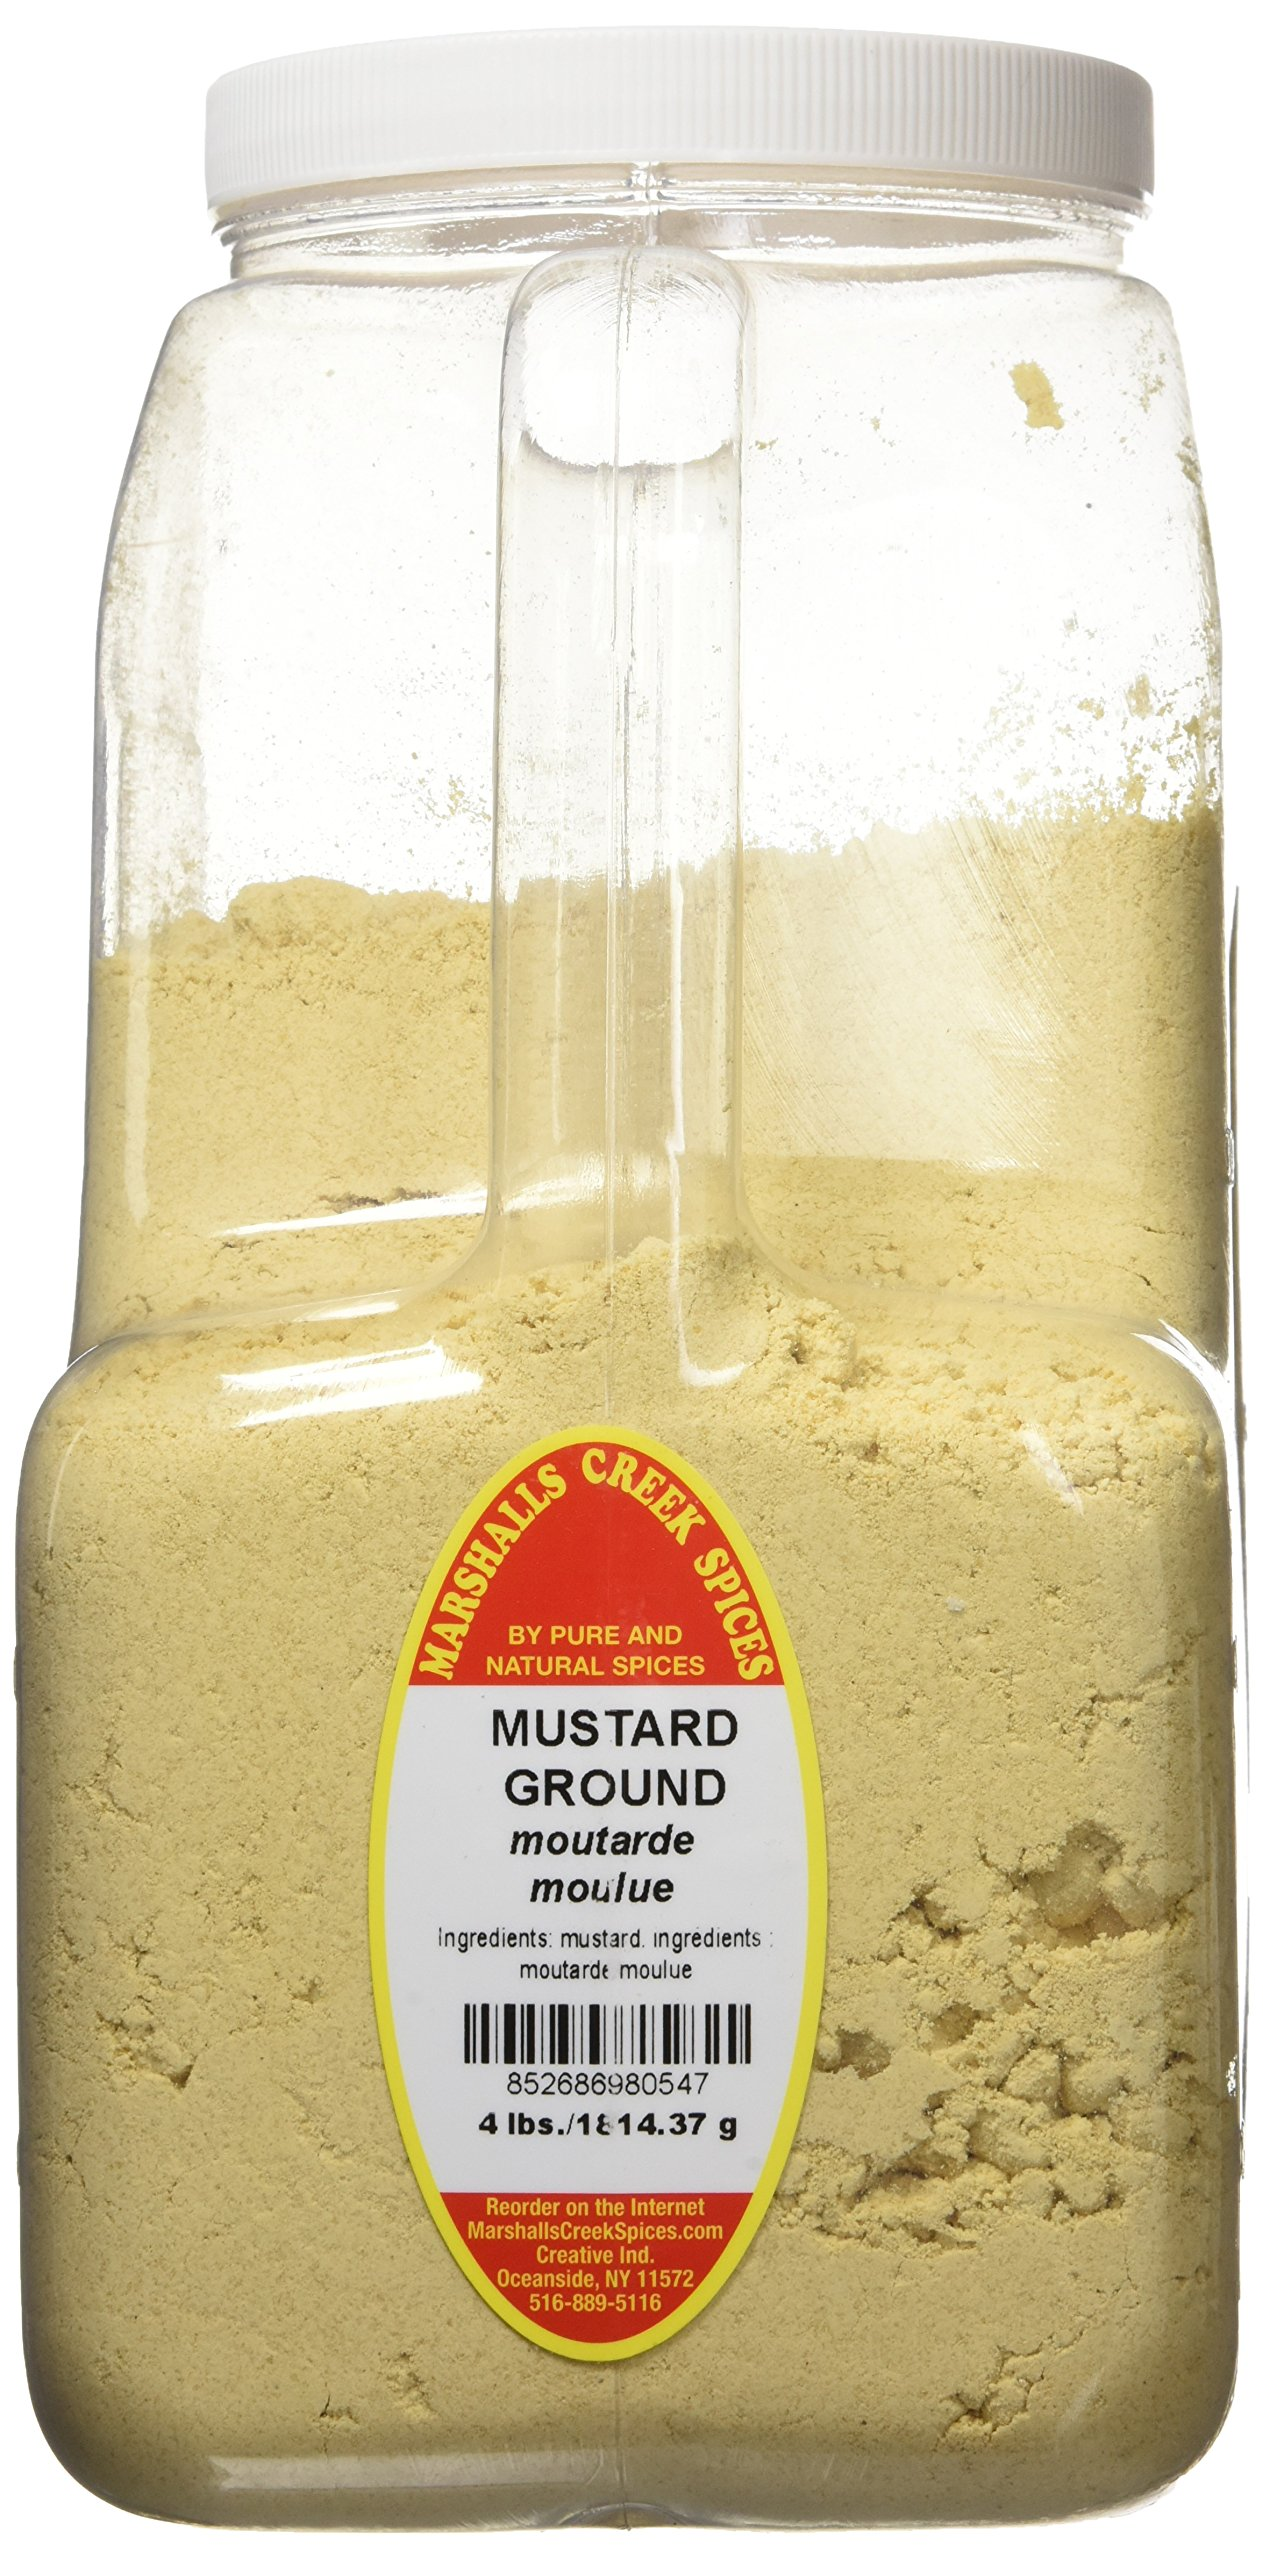 Marshalls Creek Spices XXL Restaurant Size Spice Jug, Mustard Seed Ground, 4 Pound by Marshall's Creek Spices (Image #1)